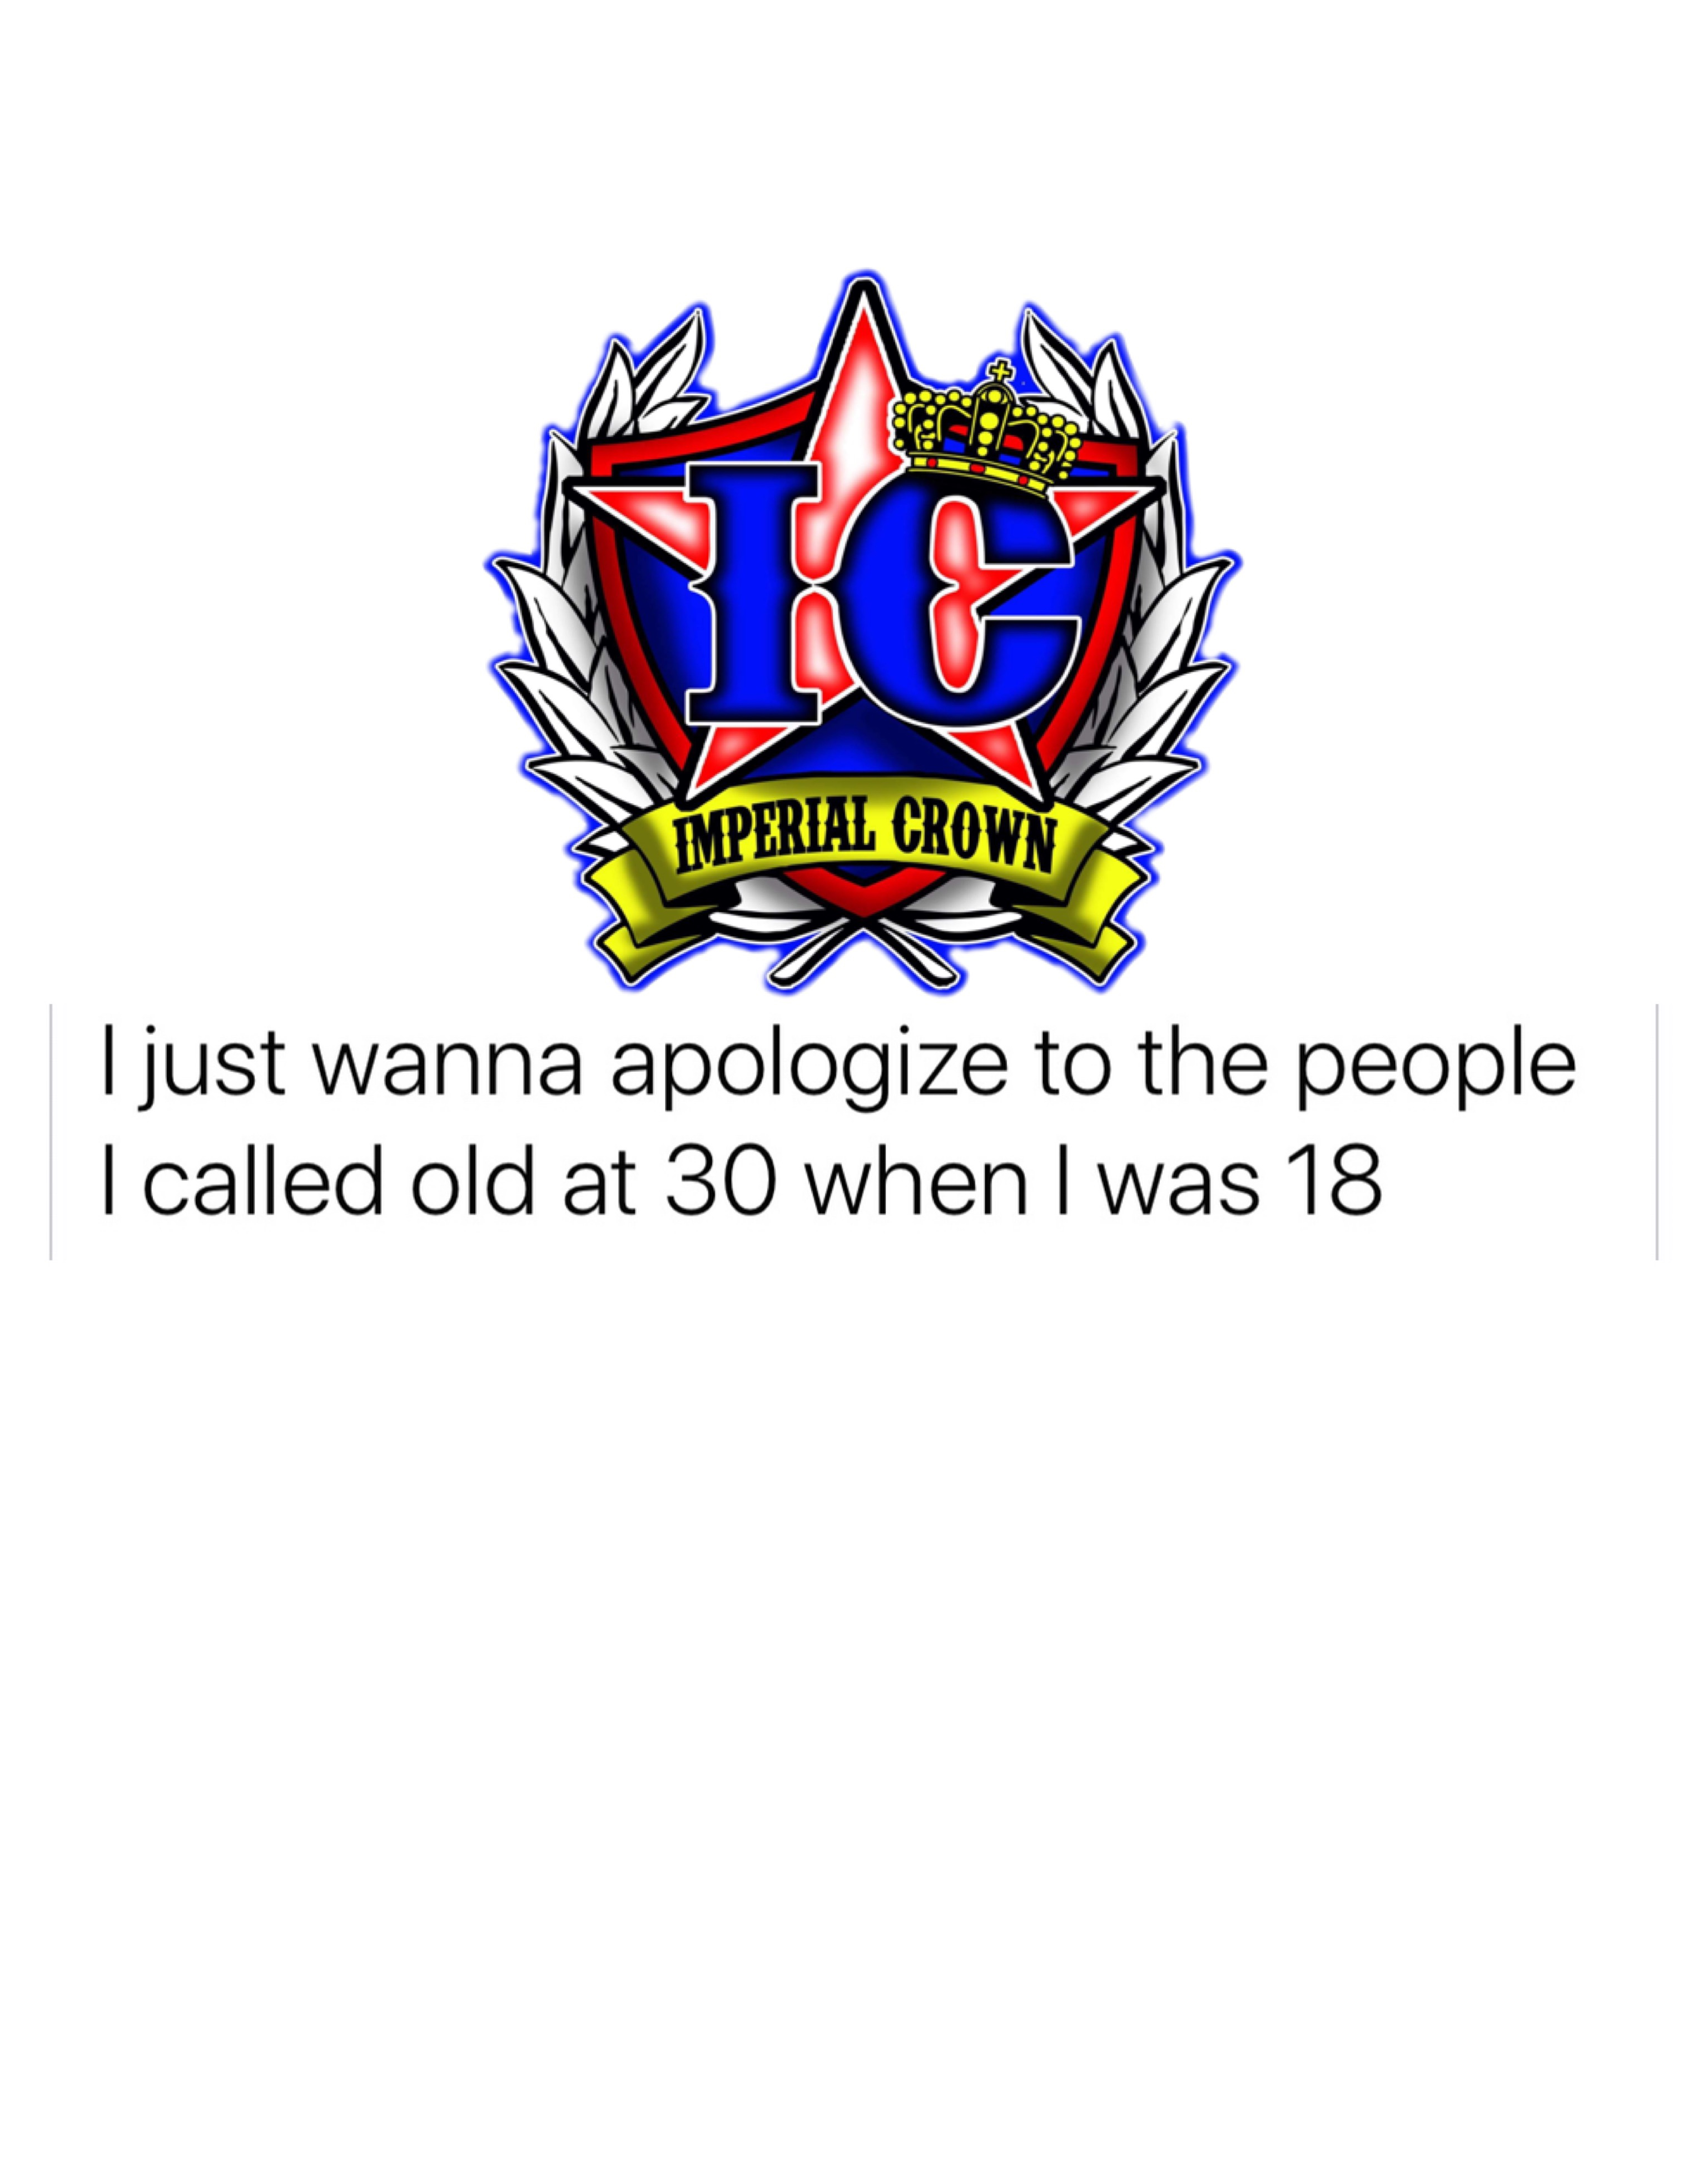 I just wanna apologize to people I called old at 30 when I was 18